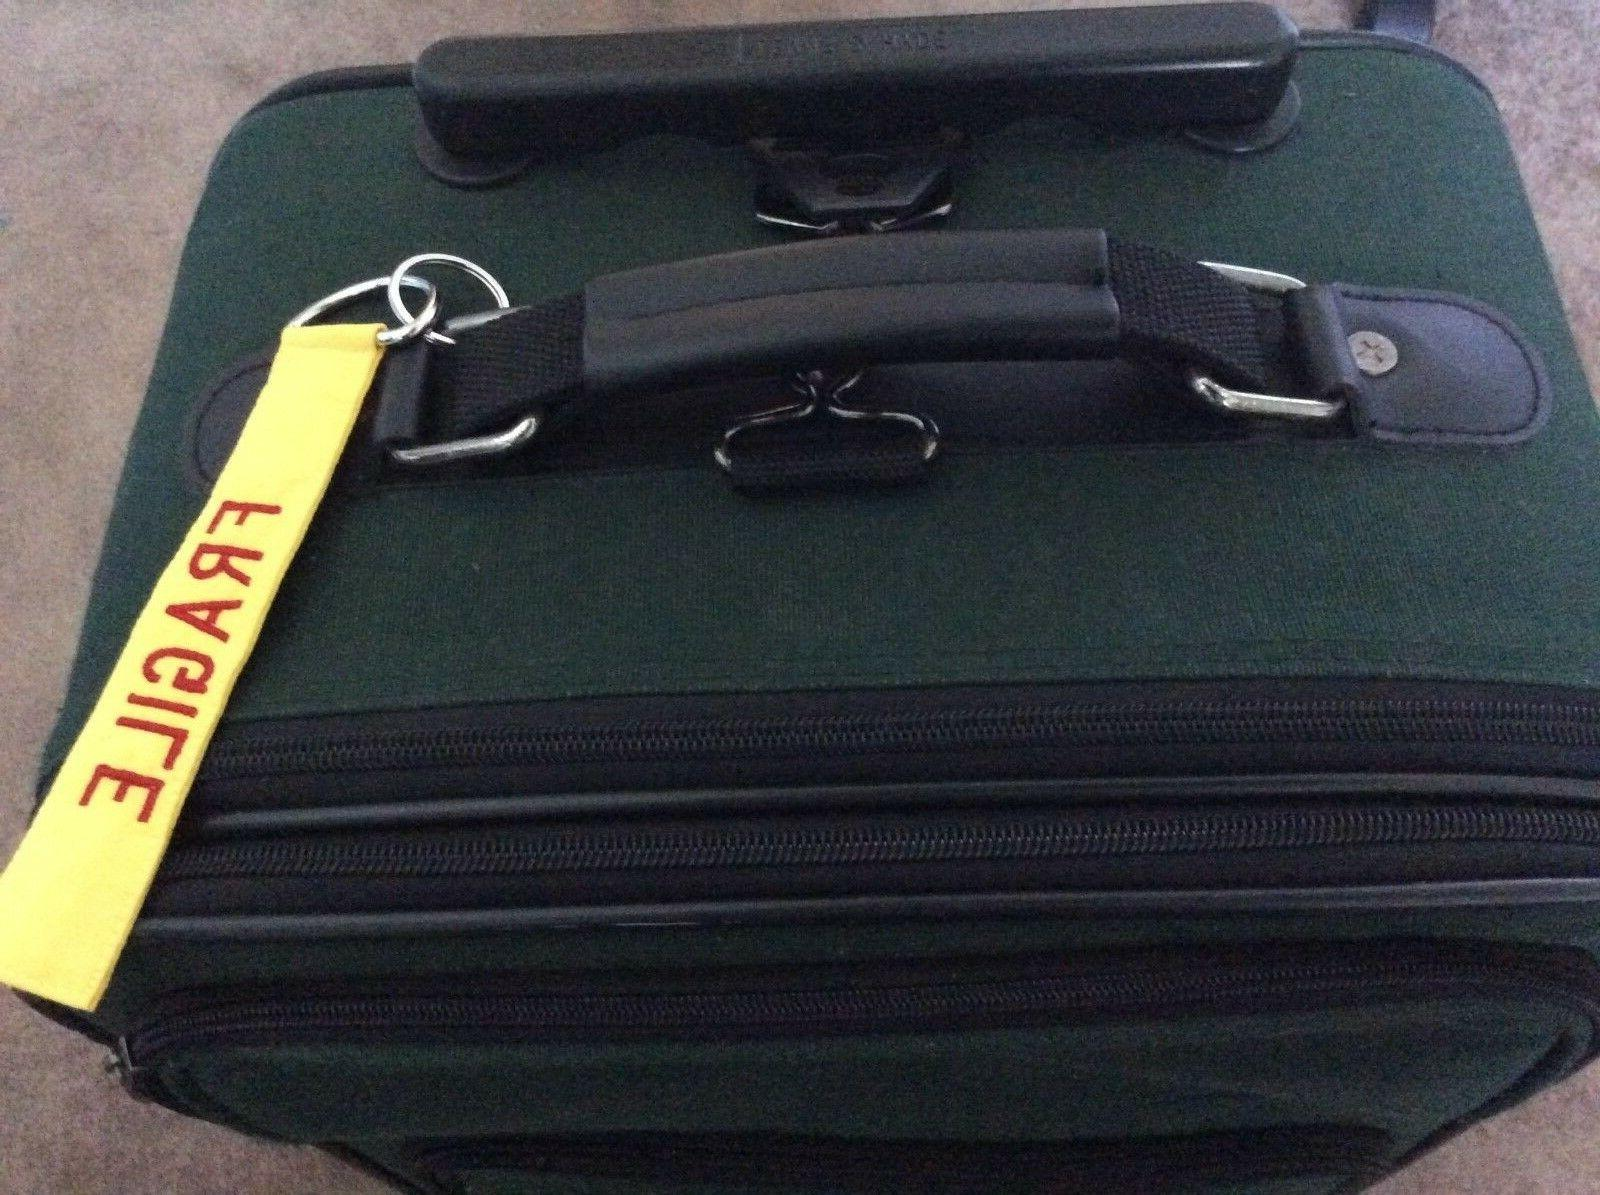 Personalized Luggage Tag Identifier